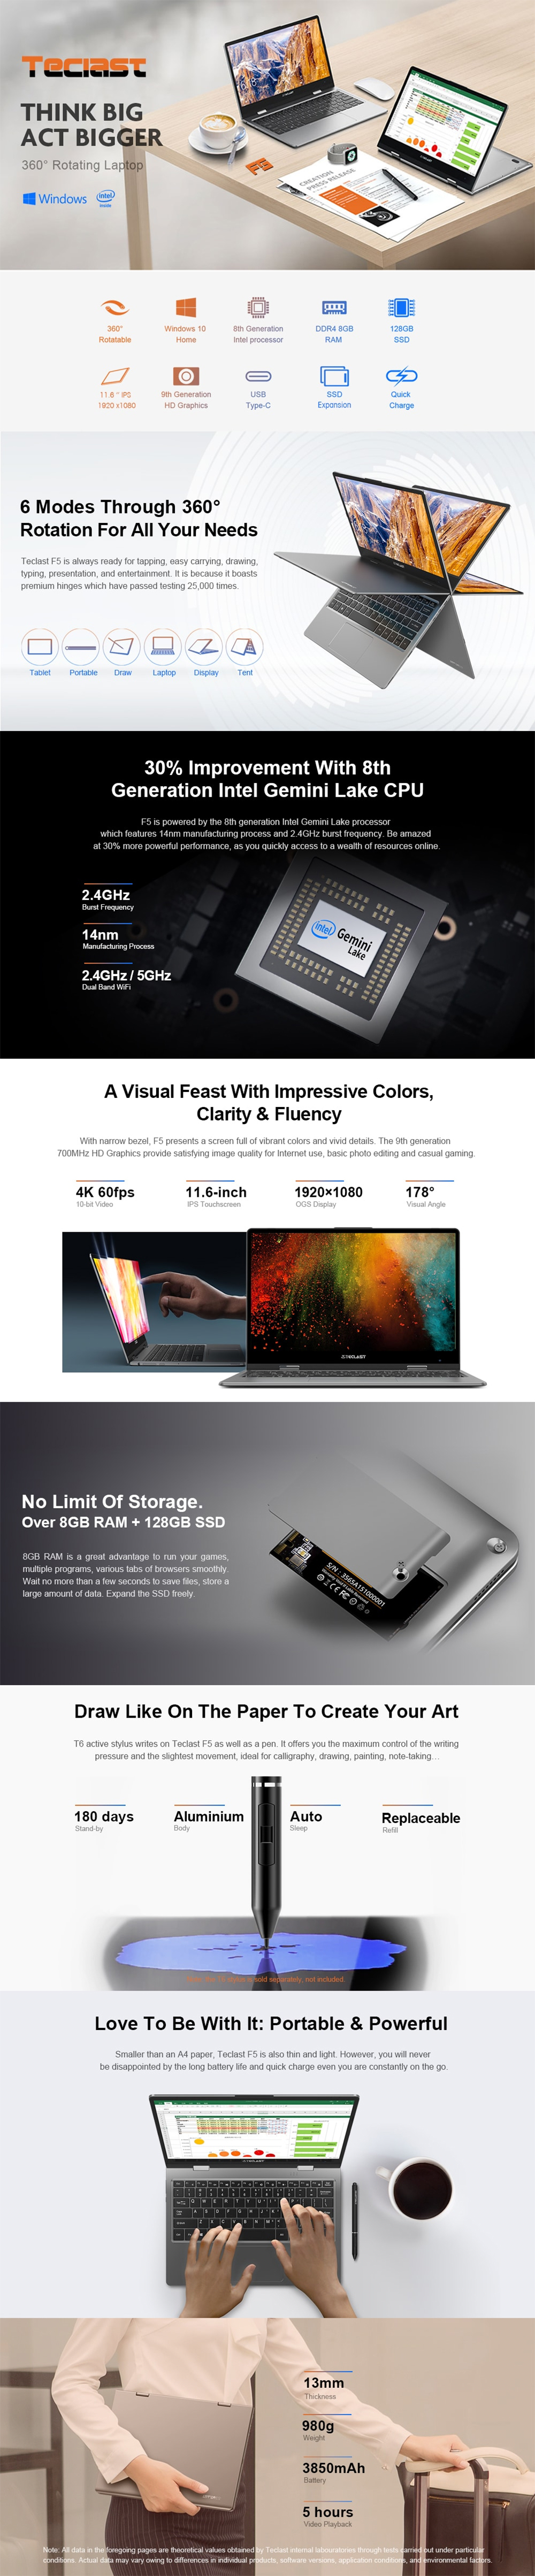 Teclast F5 11.6 Inch Touch Screen 360° Rotating Intel Gemini Lake N4100 8GB DDR4 128GB SSD Laptop